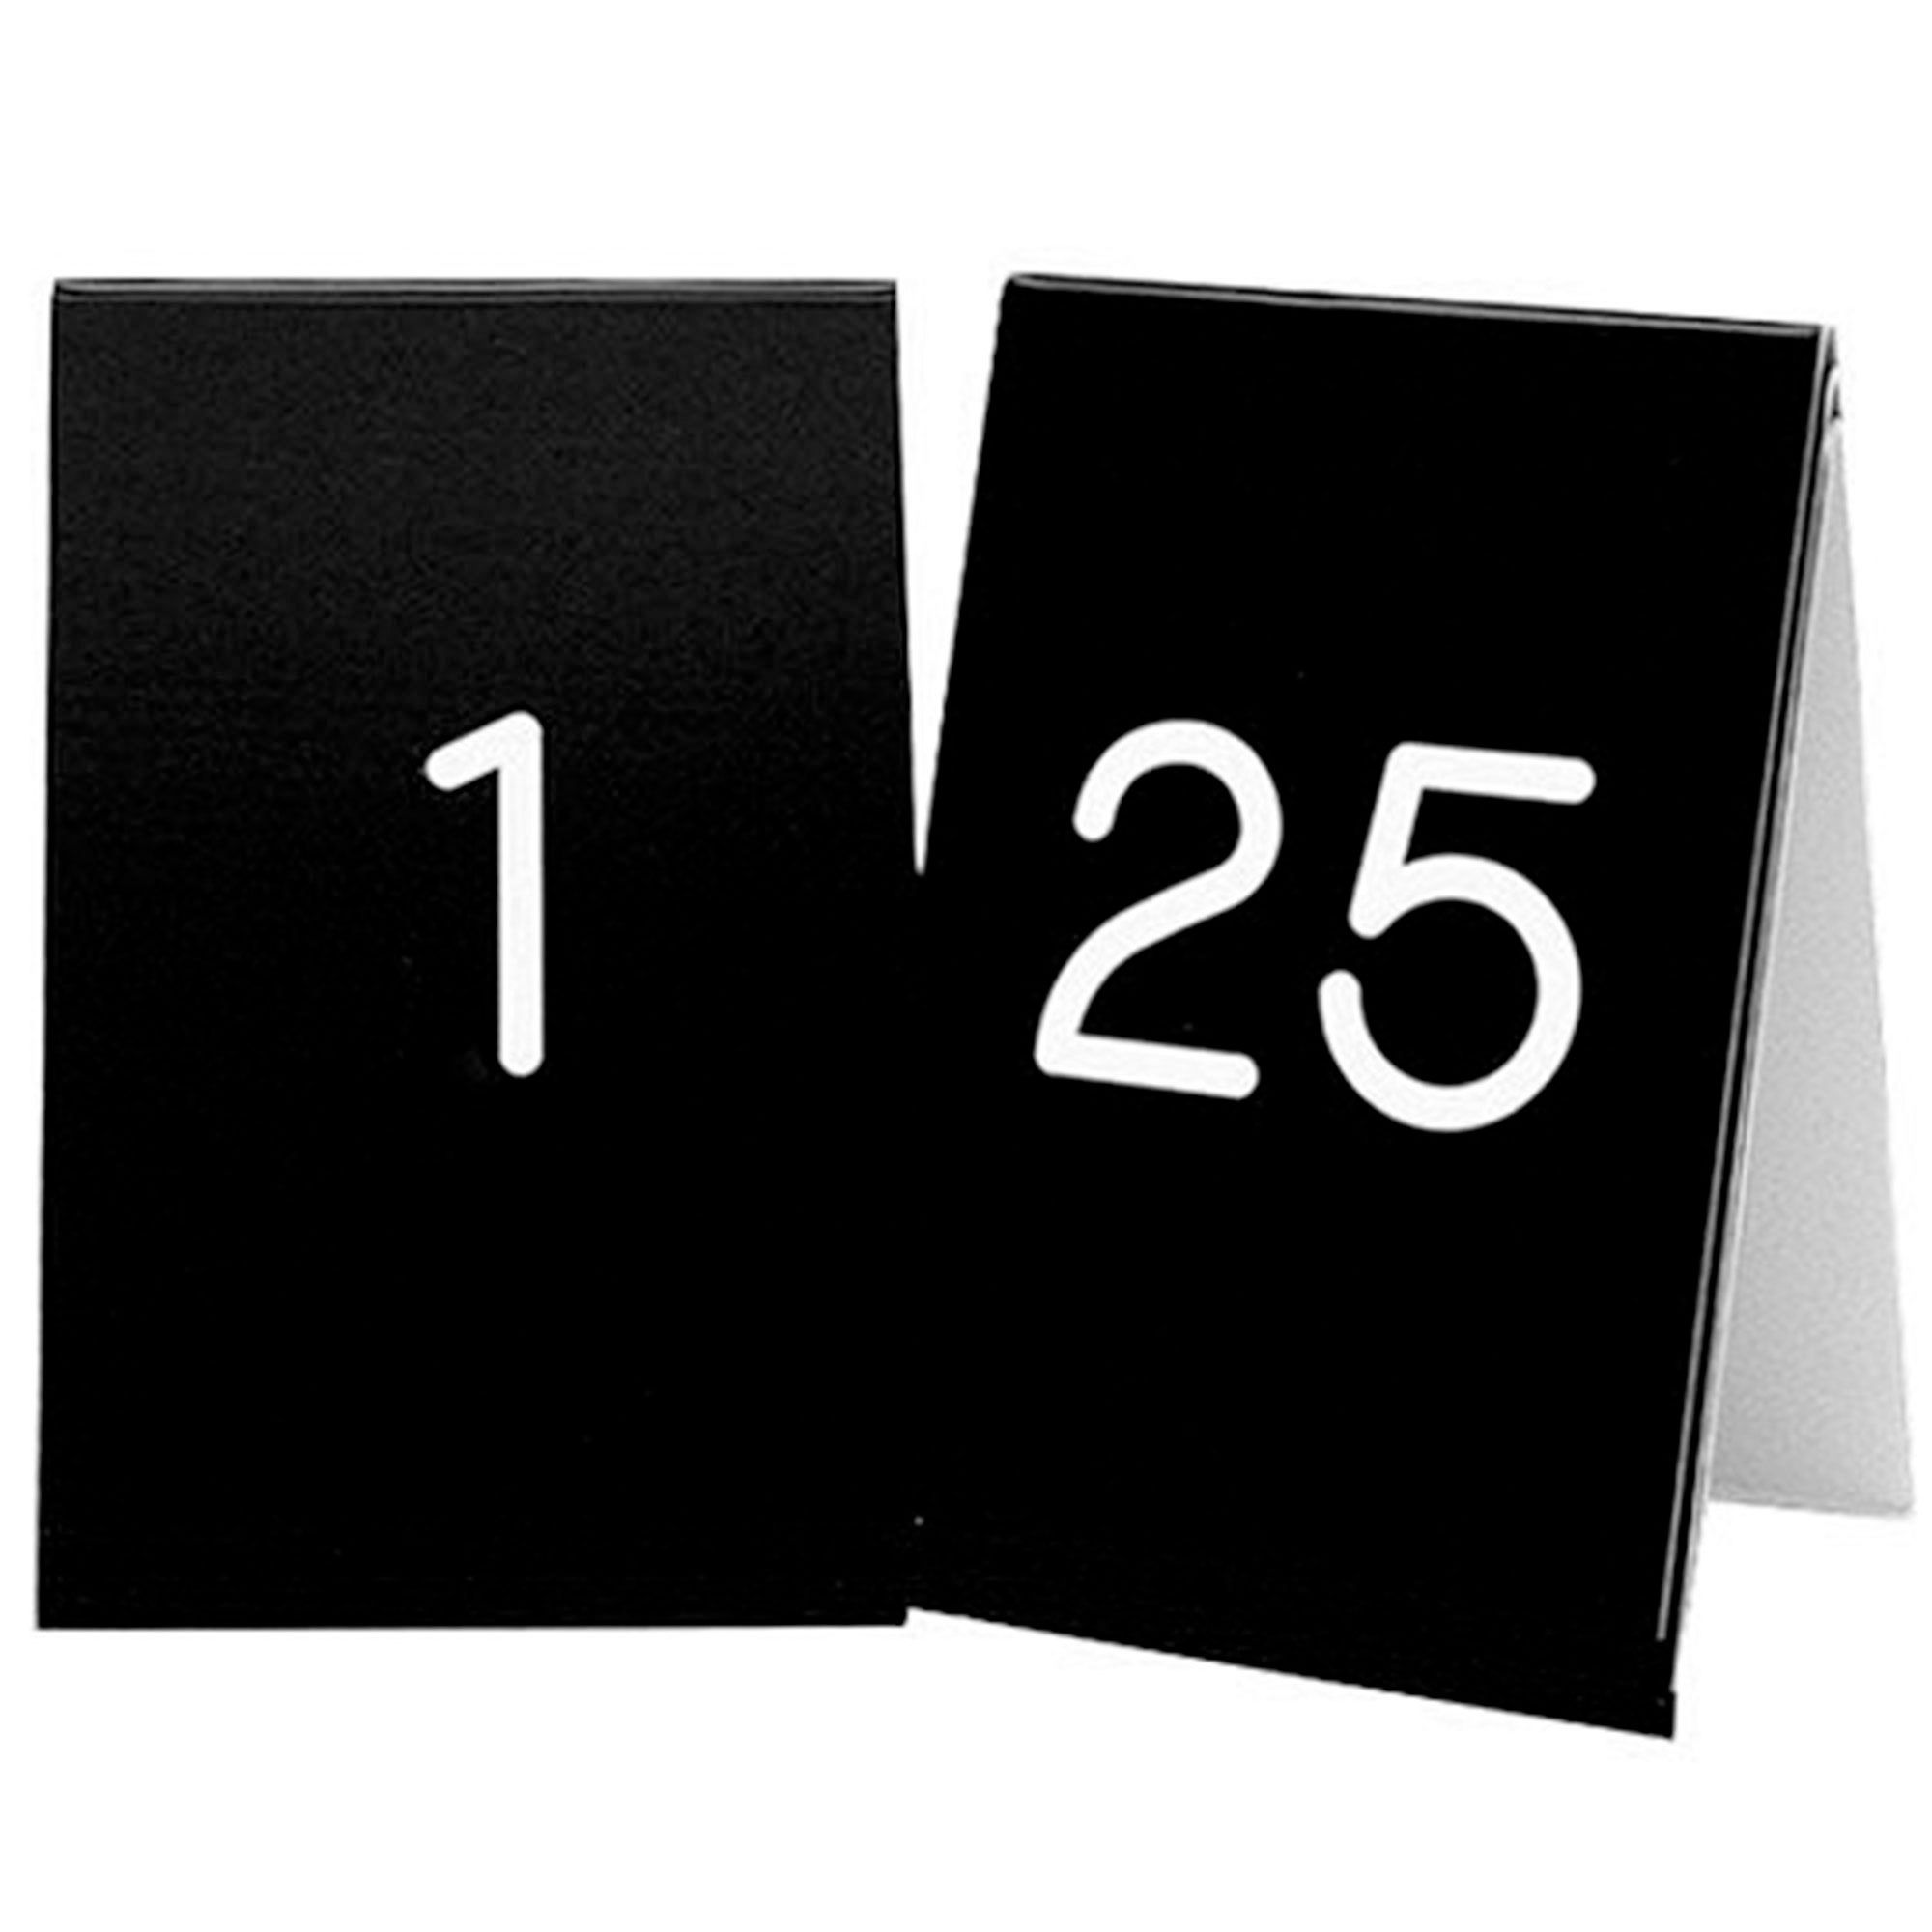 3.5W x 5H Number Tent Sign Set 1 to 25 White/Black Tags  sc 1 st  Pinterest & 3.5W x 5H Number Tent Sign Set 1 to 25 White/Black Tags: Table ...